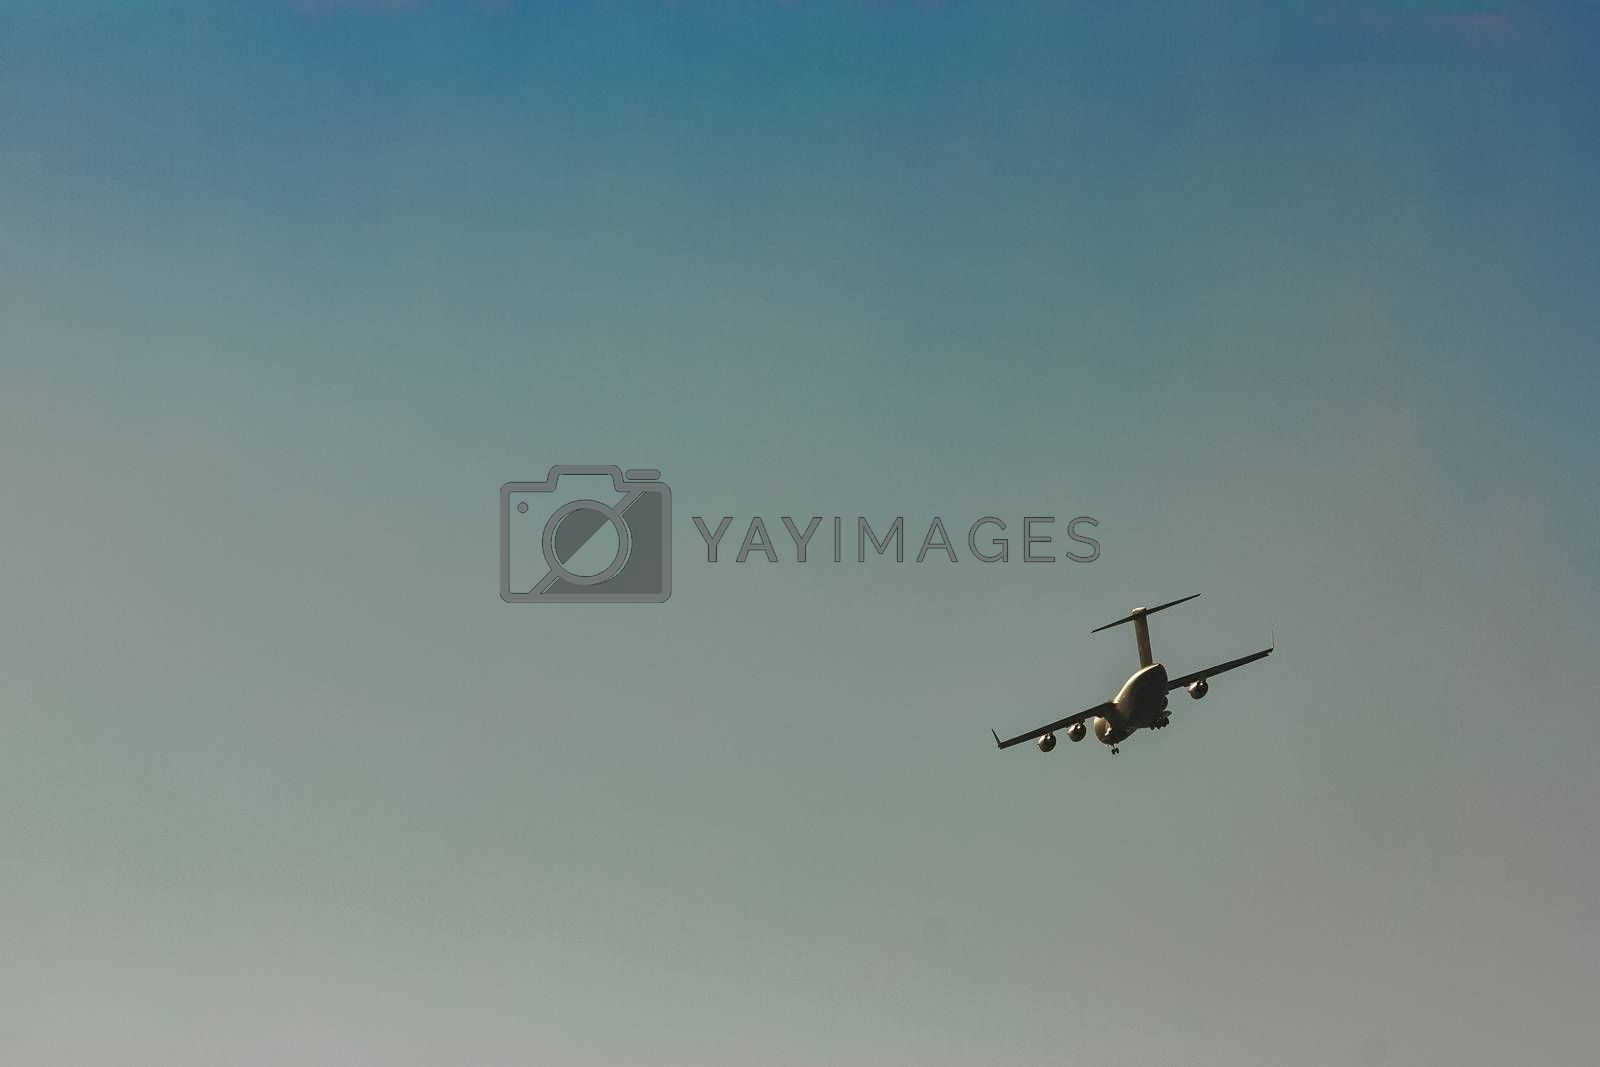 Passenger aircraft in the sky by sengnsp